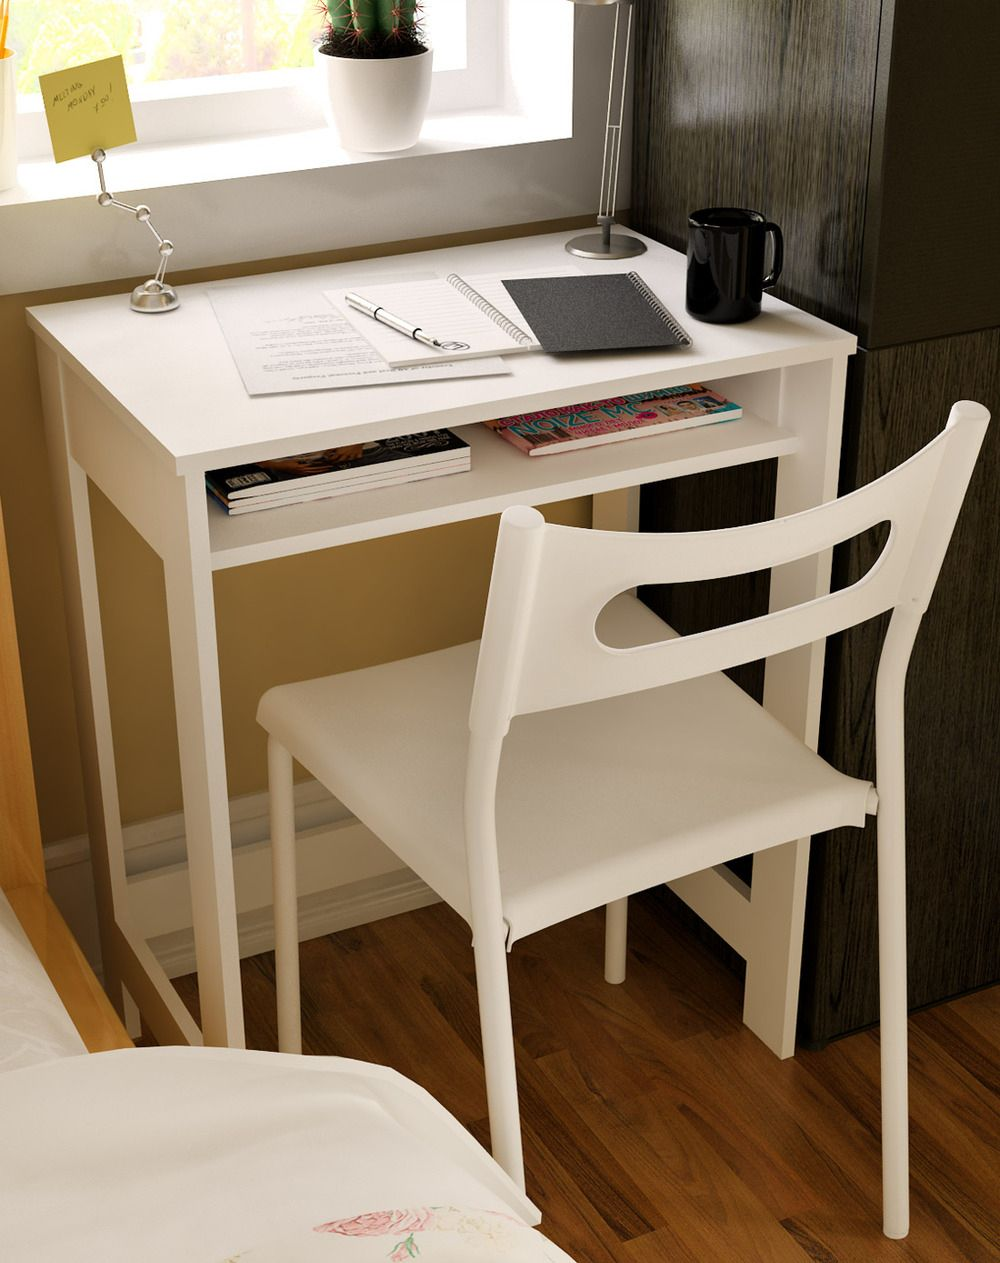 Small Study Desk Ikea Living Room Table Sets Cheap Check More At Http Www Gameintown Com Small Small Study Desk Study Table Designs Desks For Small Spaces